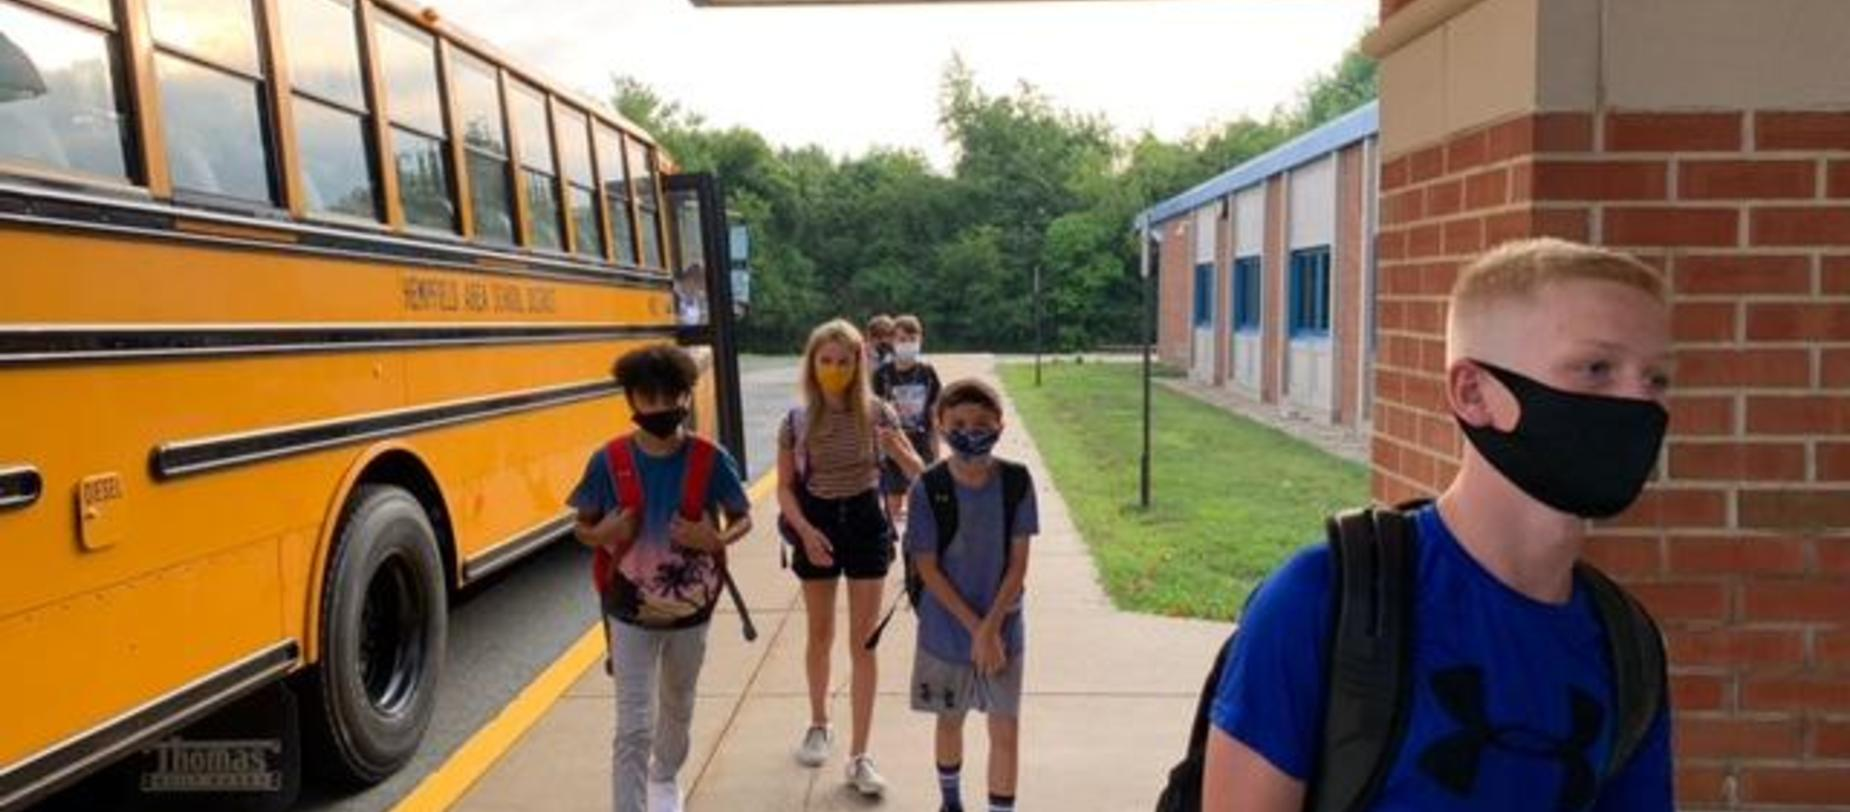 Students entering WHMS